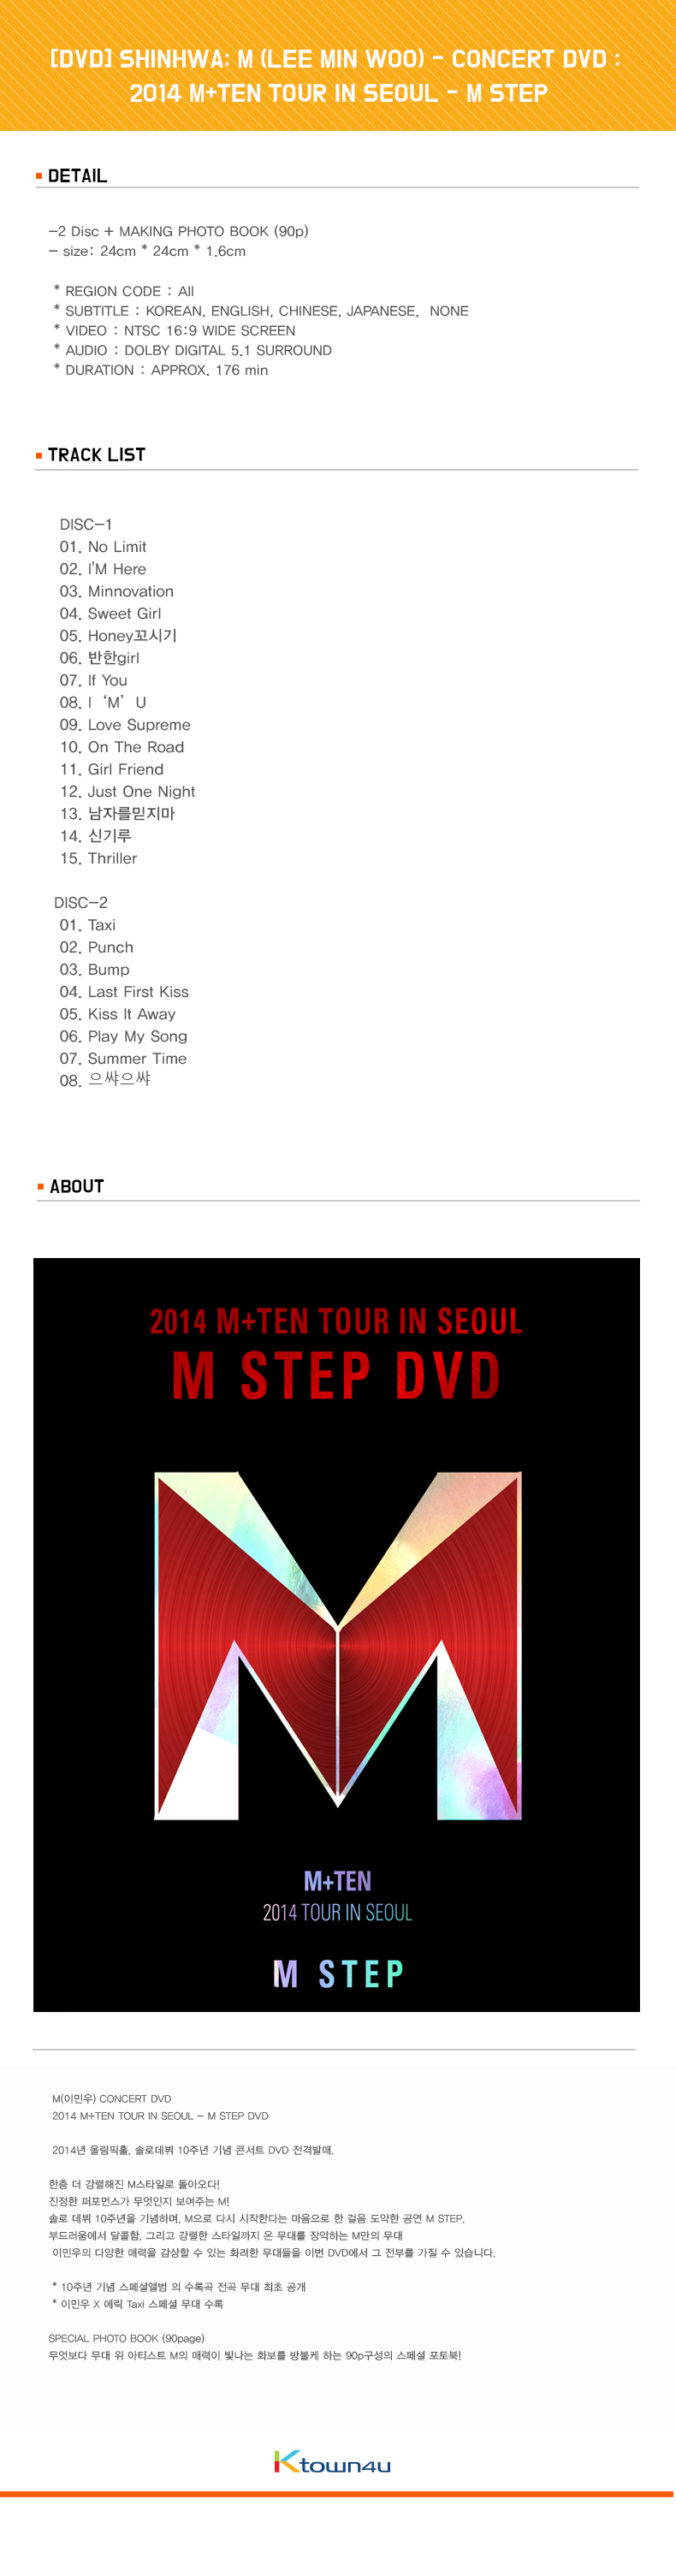 [DVD] SHINHWA(神话): M (LEE MIN WOO) - 演唱会DVD :M+TEN TOUR IN SEOUL - M STEP